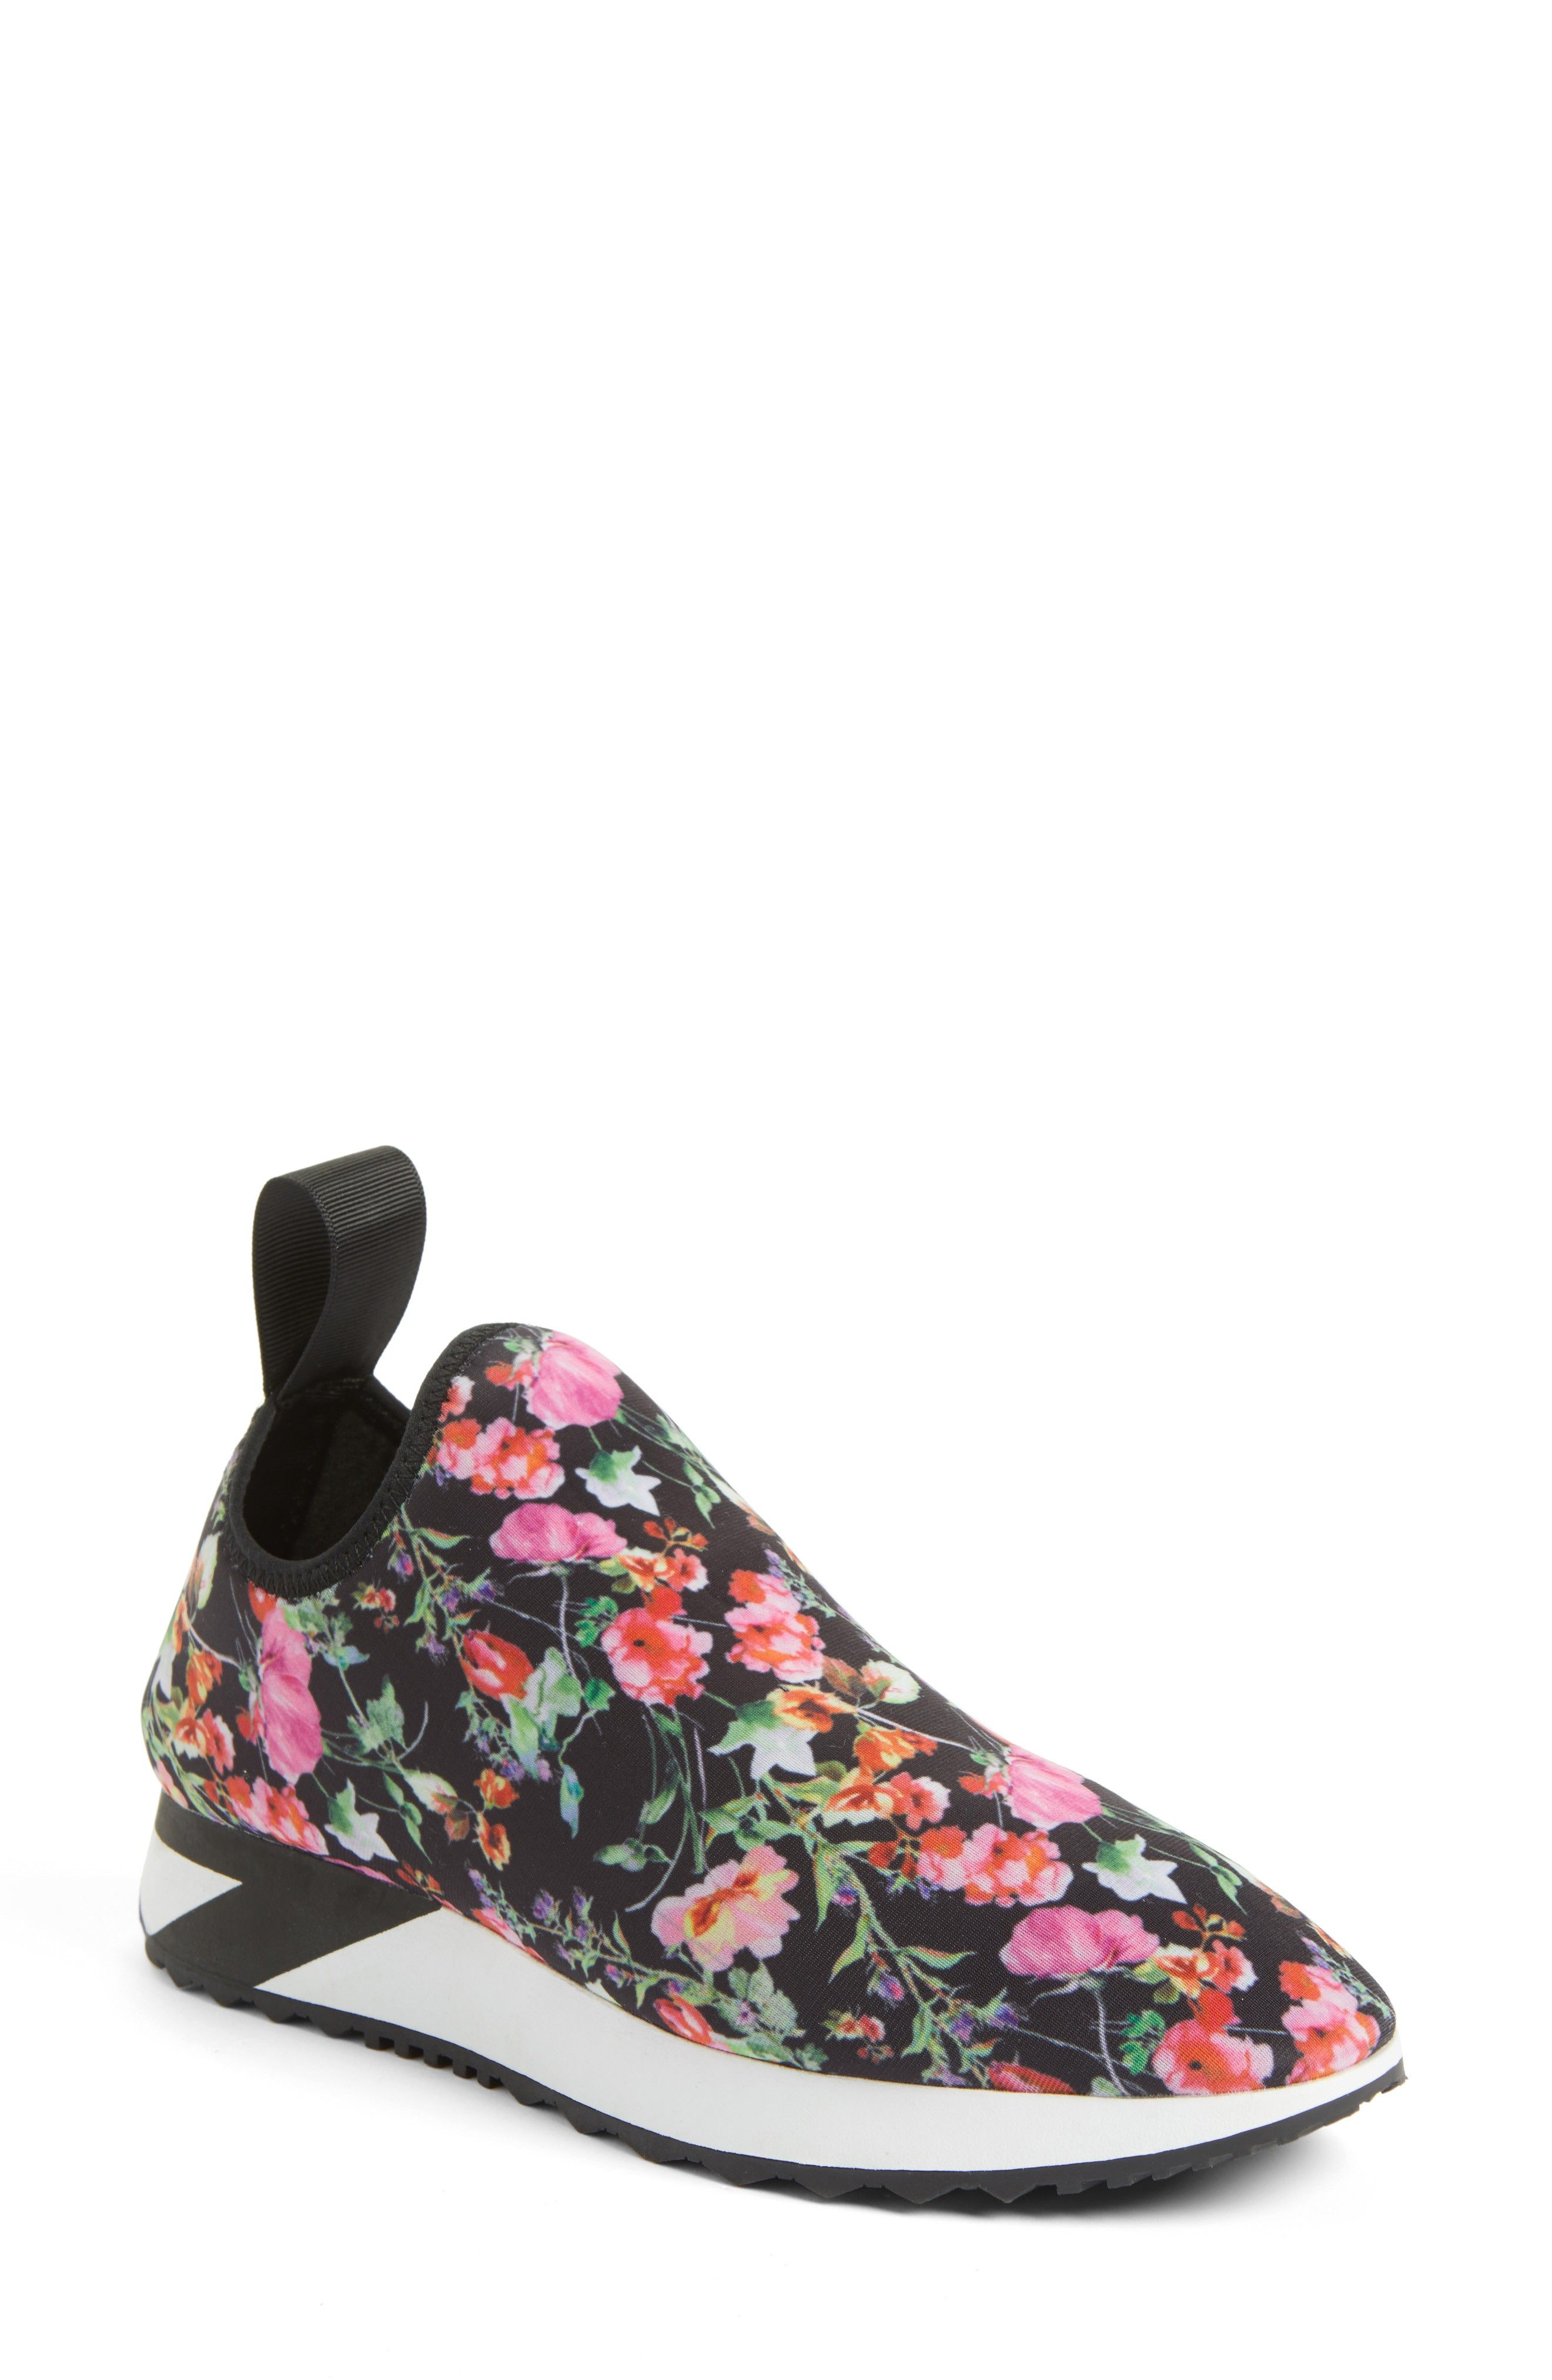 4bae2fd3663 Clarks Suede Slip-On Loafers w  Knotted Detail- Sharon Dasher ...